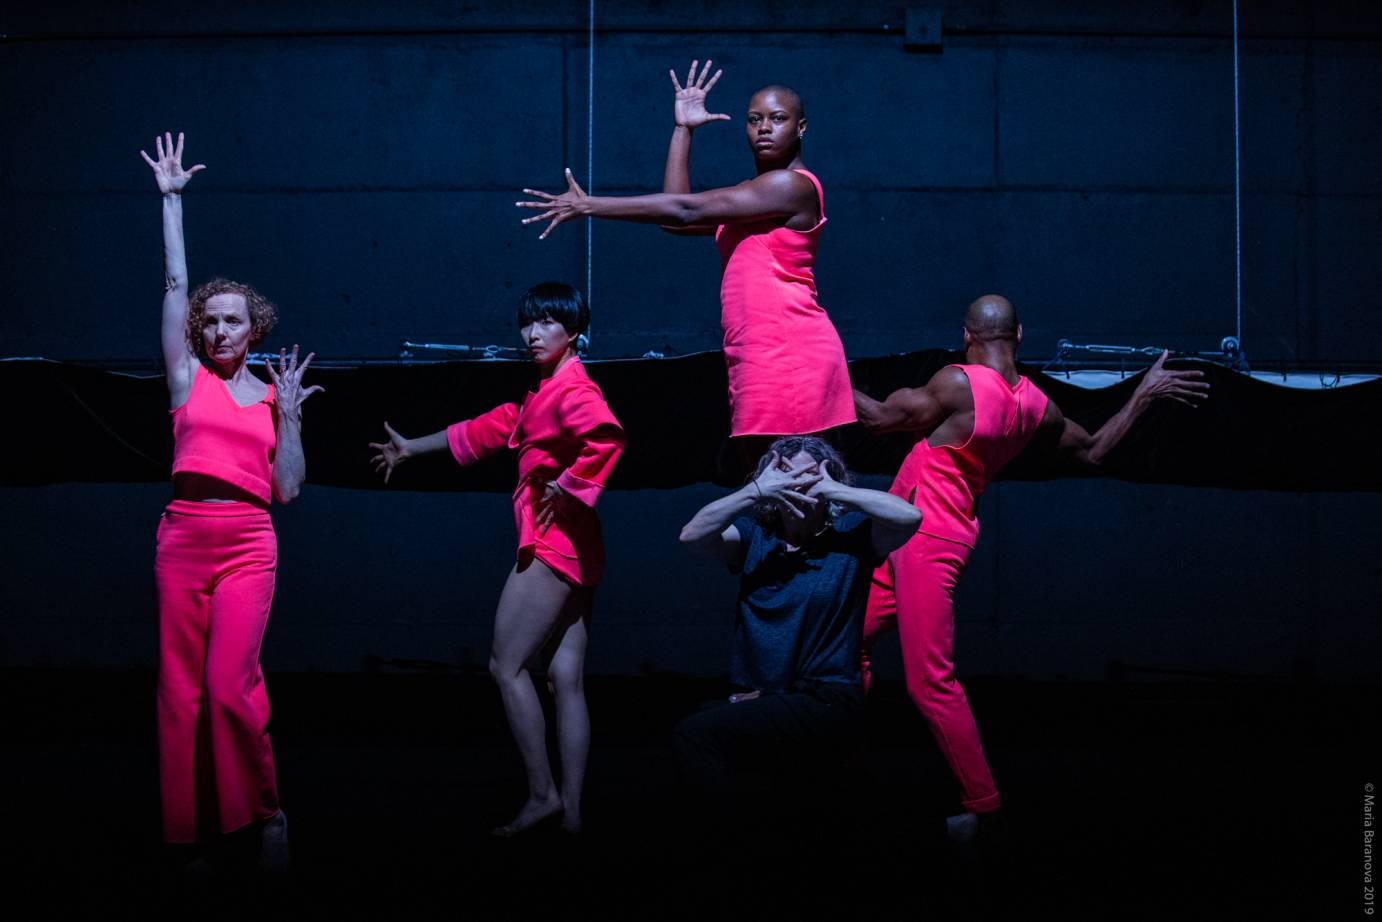 A group in bright pink makes voguing gestures with intense expressions